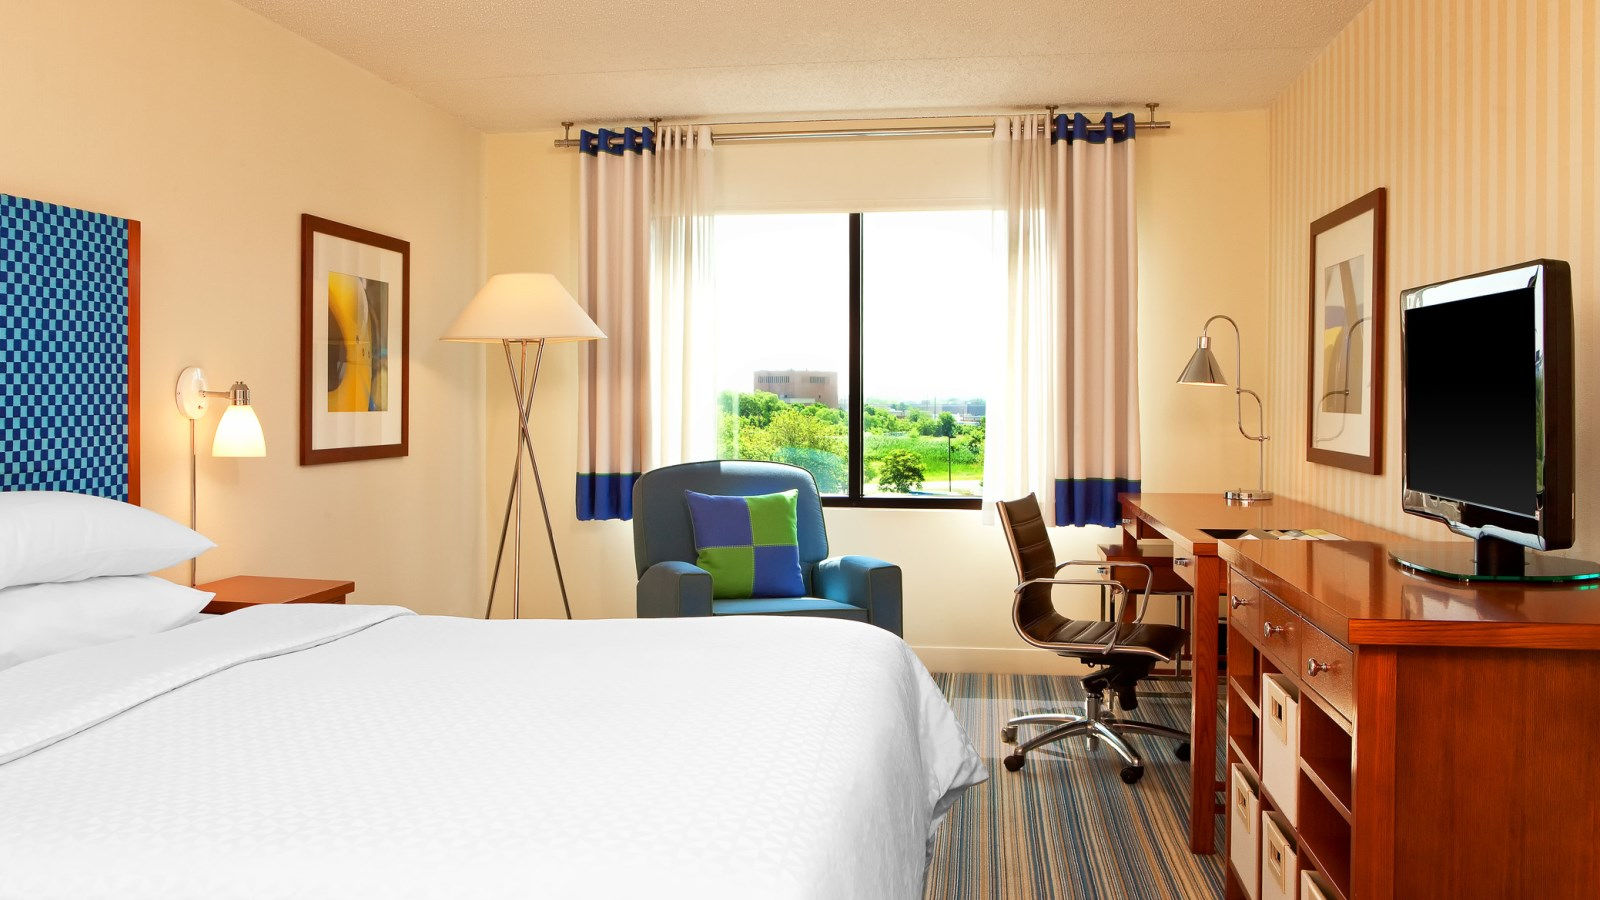 Bangor Accommodations - Accessible King Room